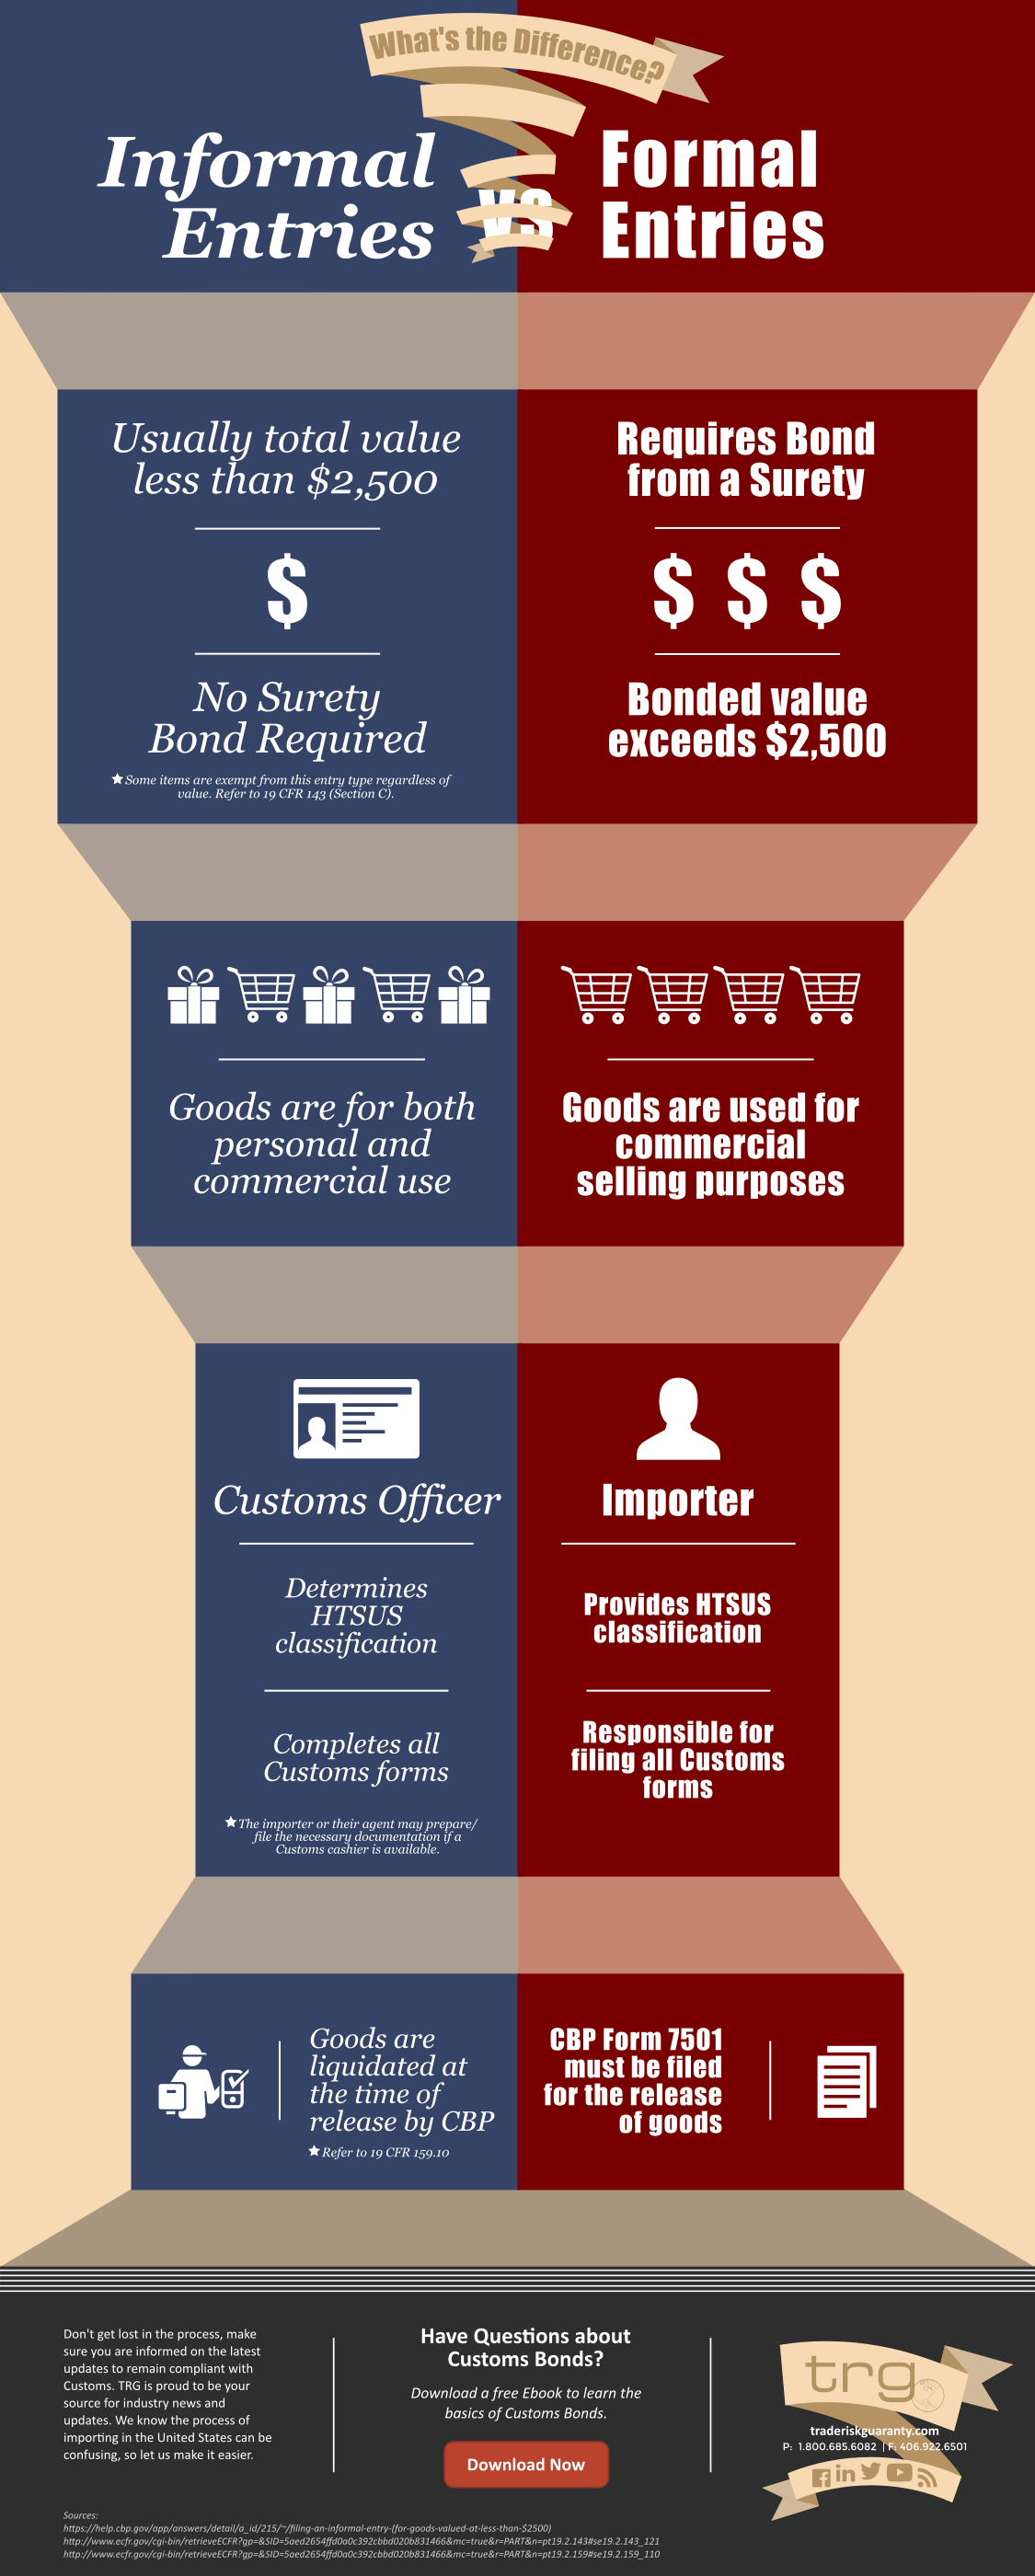 Infographic explaining the differences between formal and informal entries when importing in the United States.